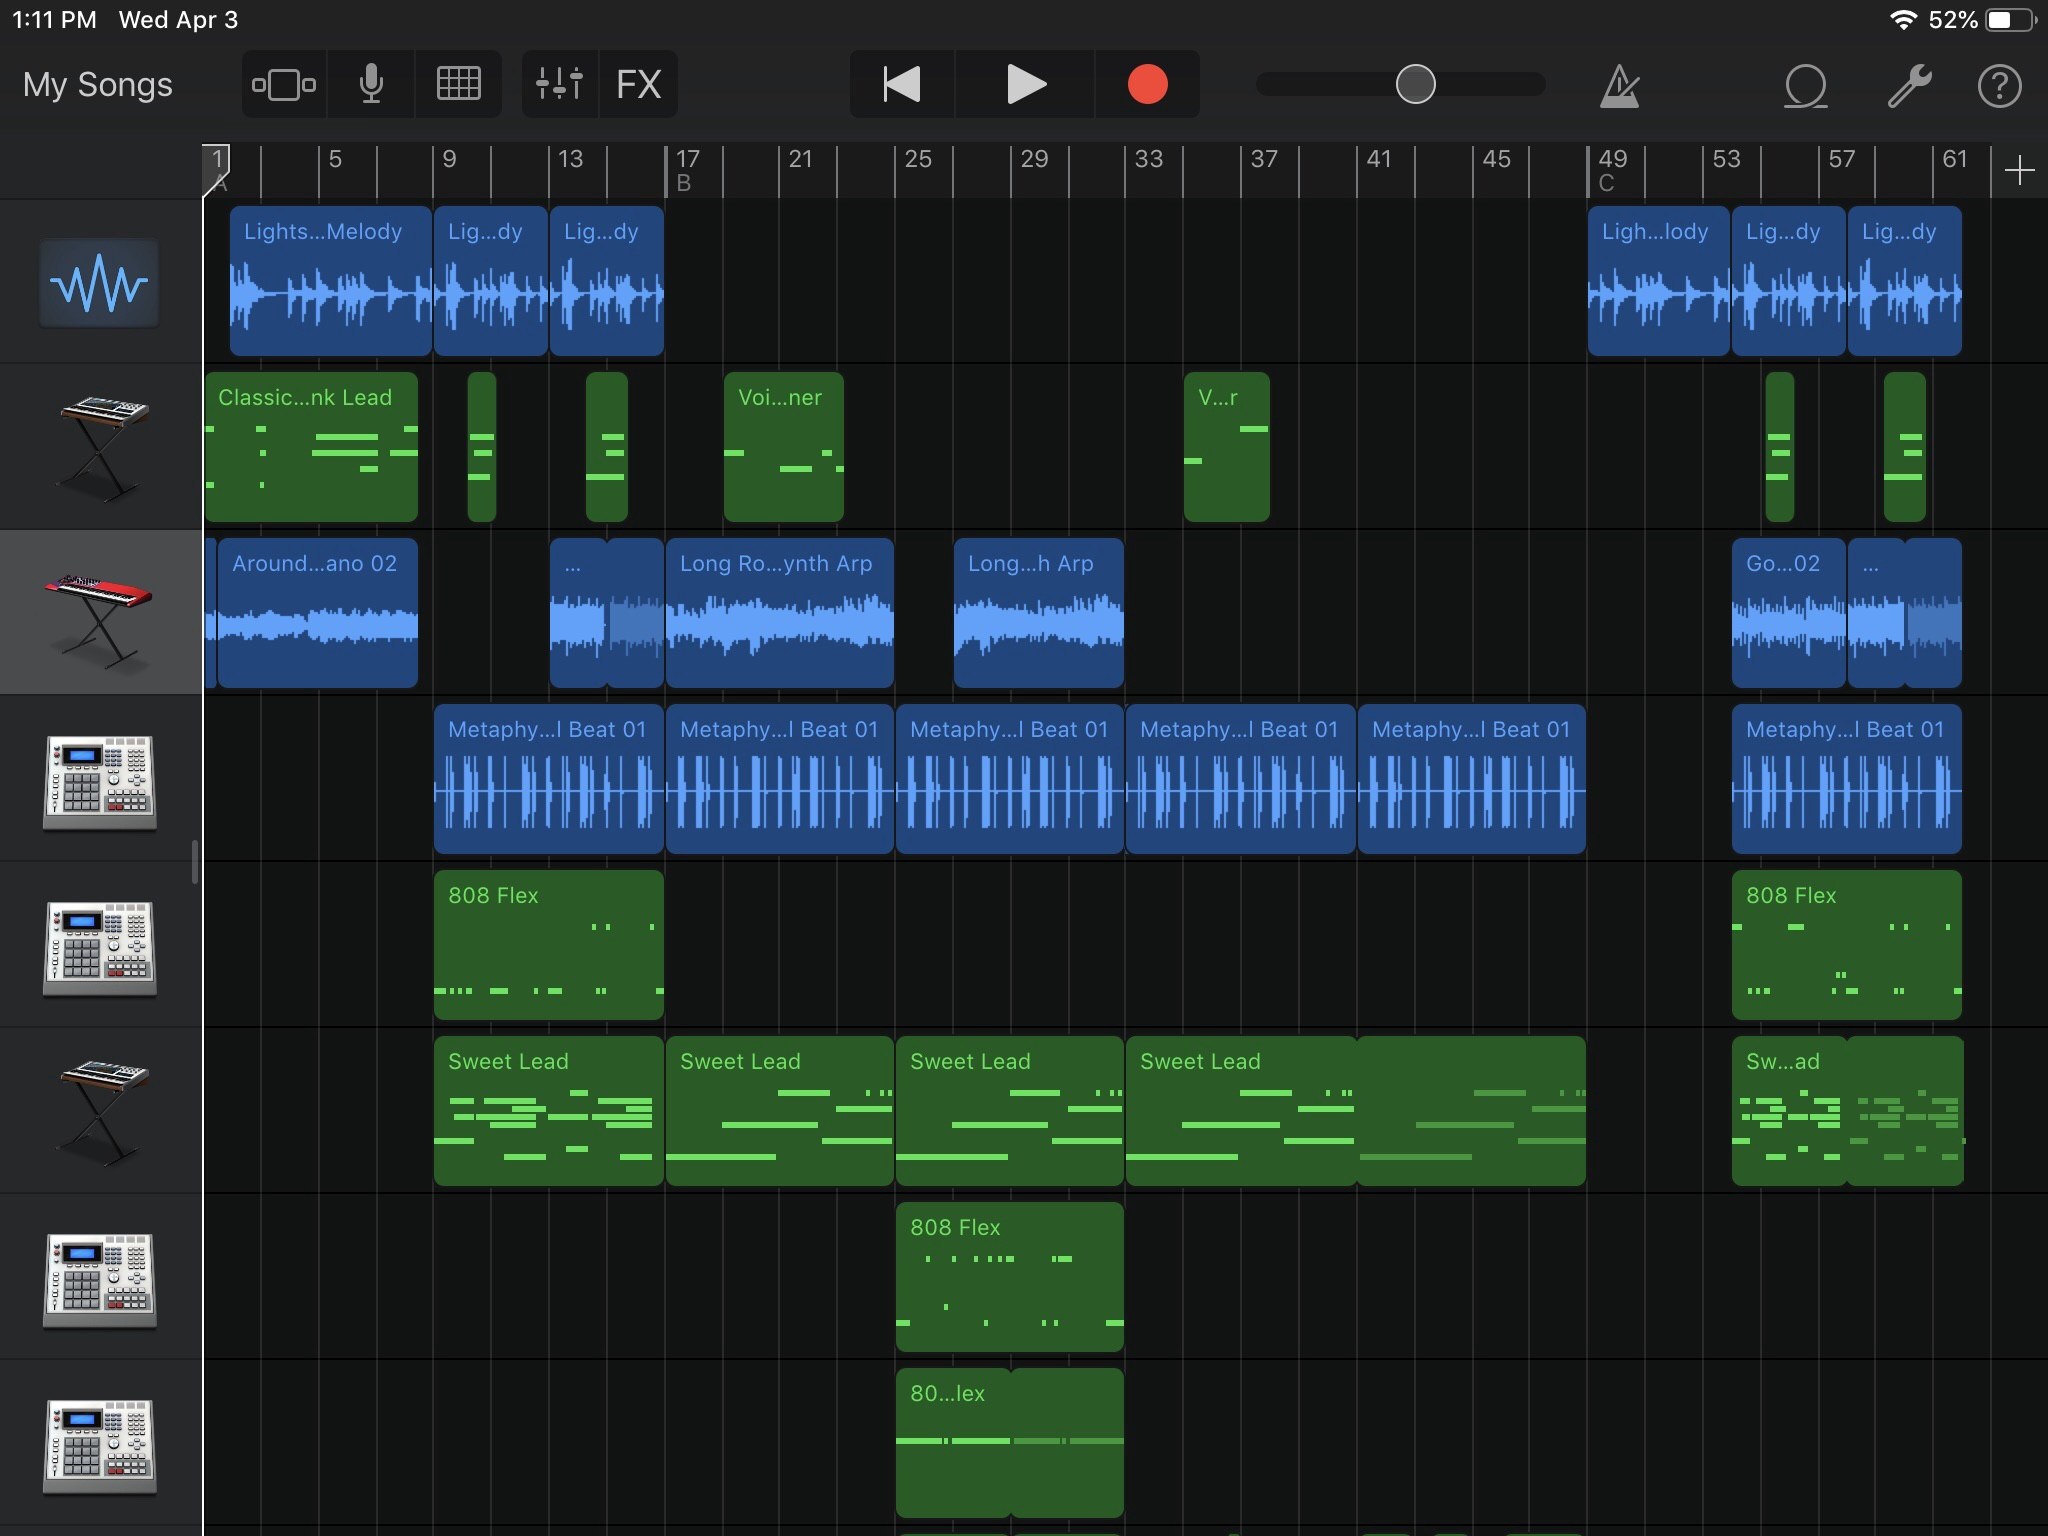 How to Make Music Without Equipment, Talent, or Experience